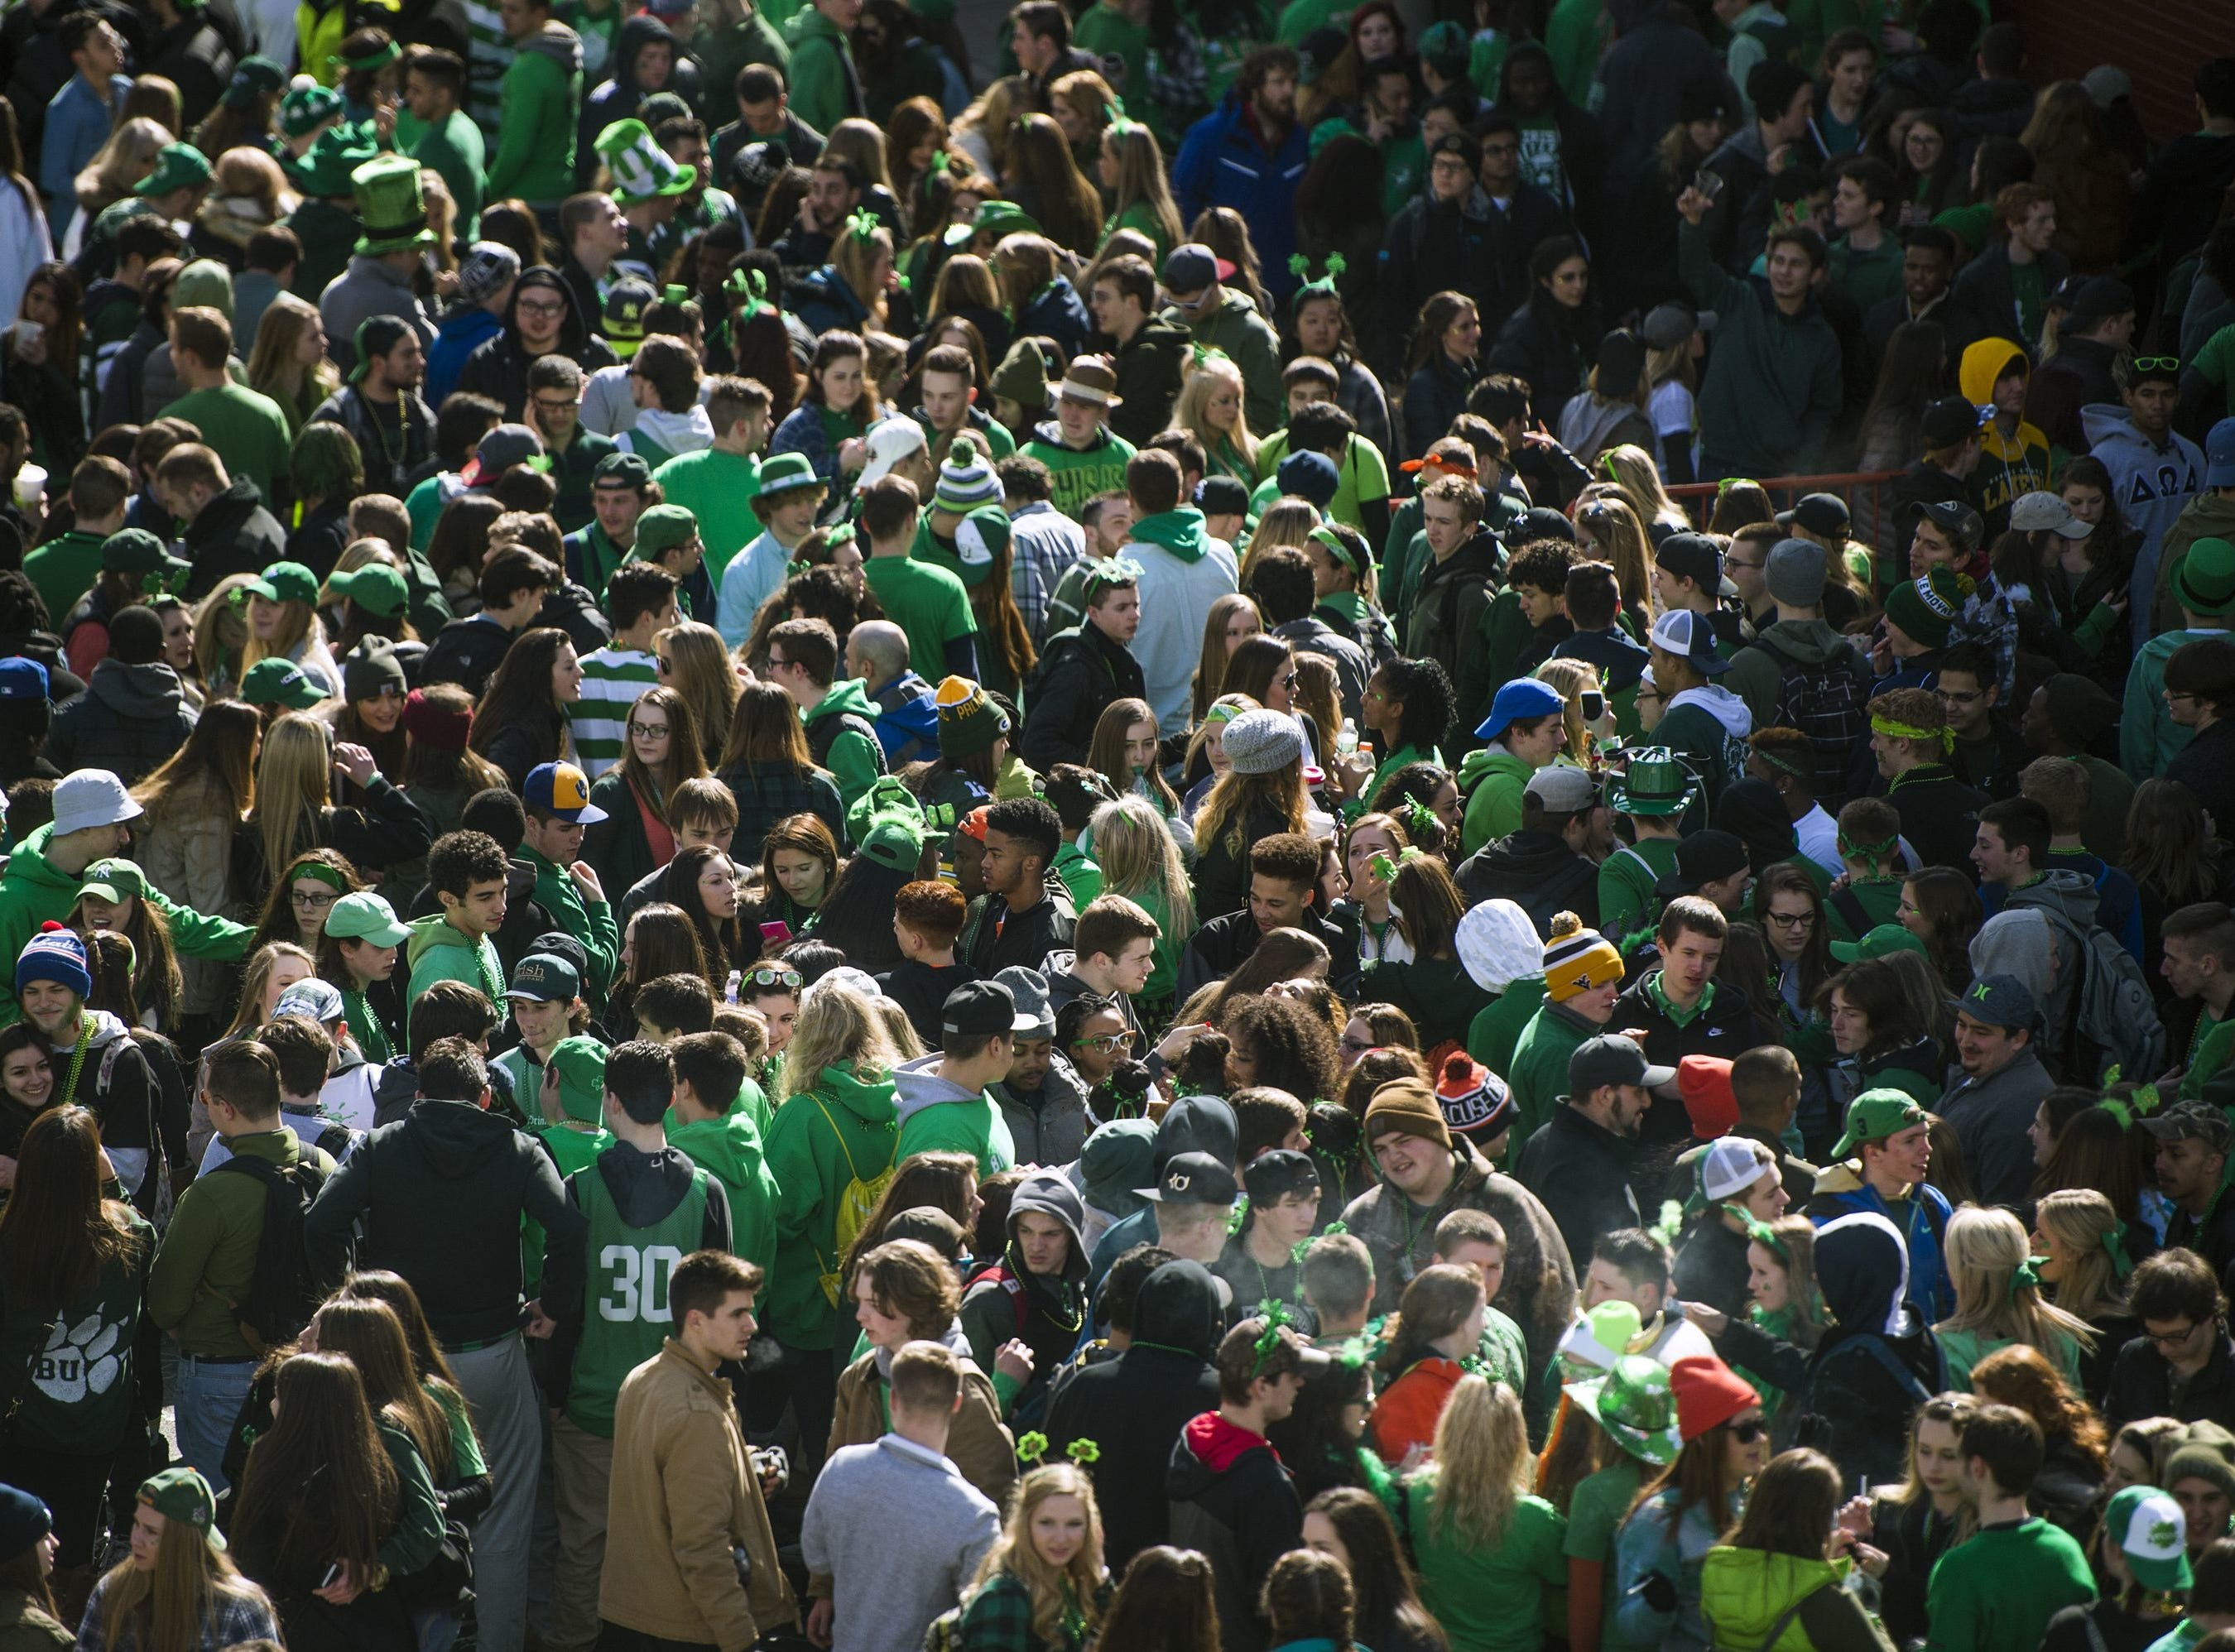 2017: Students pack State Street in downtown Binghamton before the start of the 49th annual St. Patrick's Day Parade.